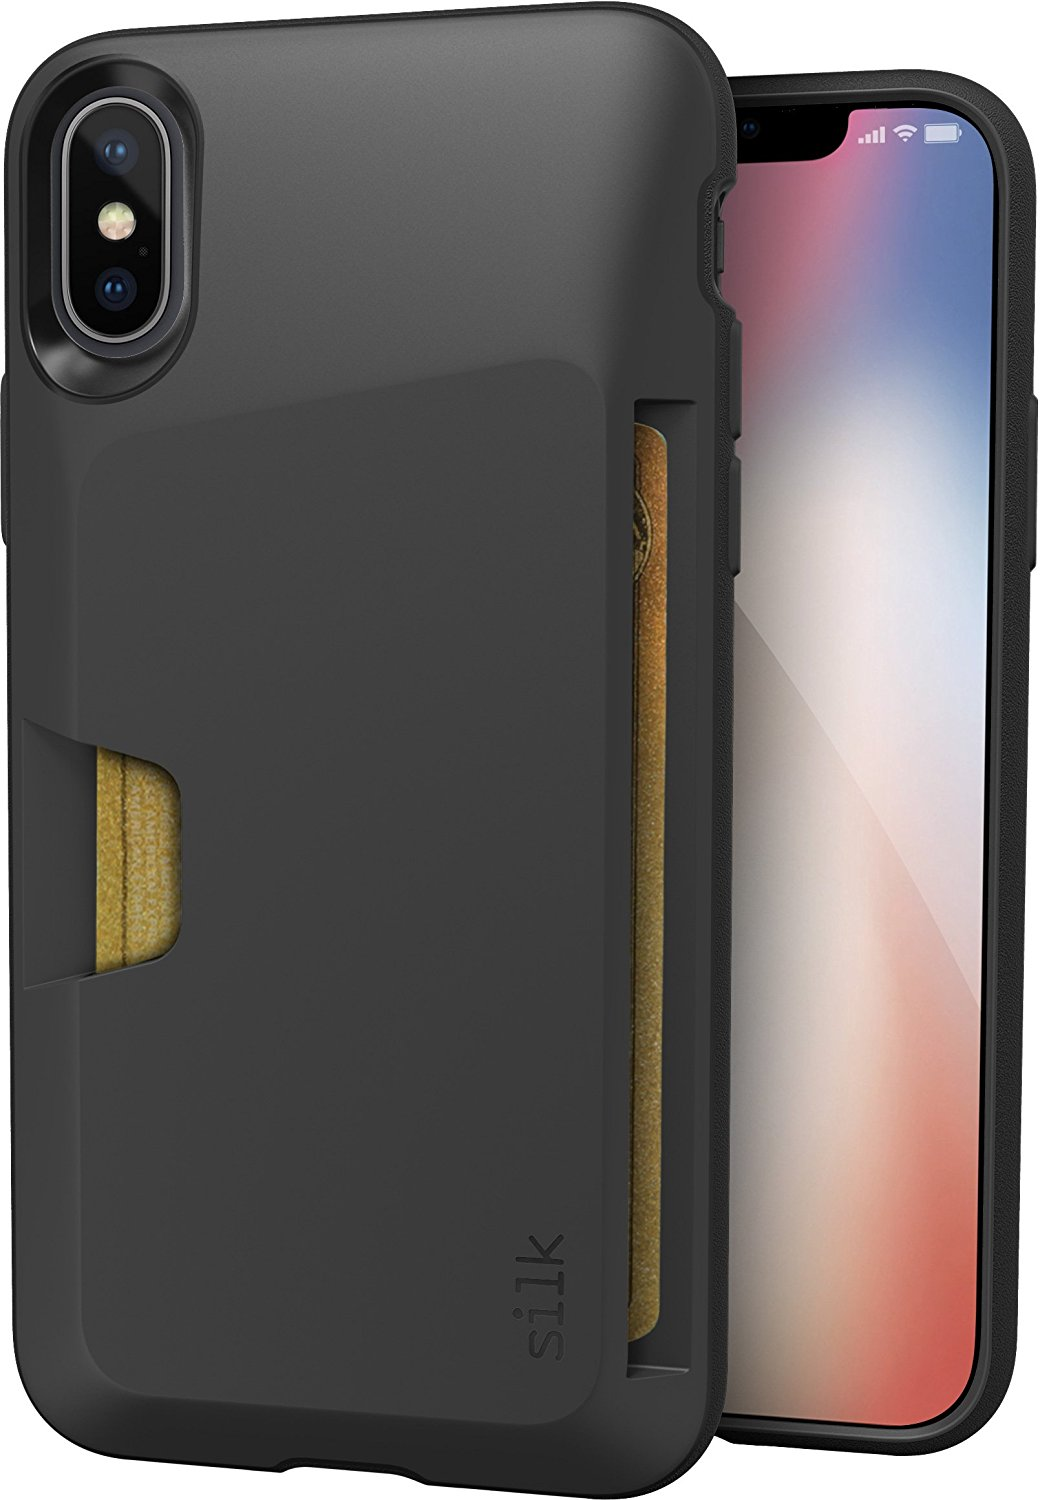 top iphone cases the best wallet cases for iphone x 2662